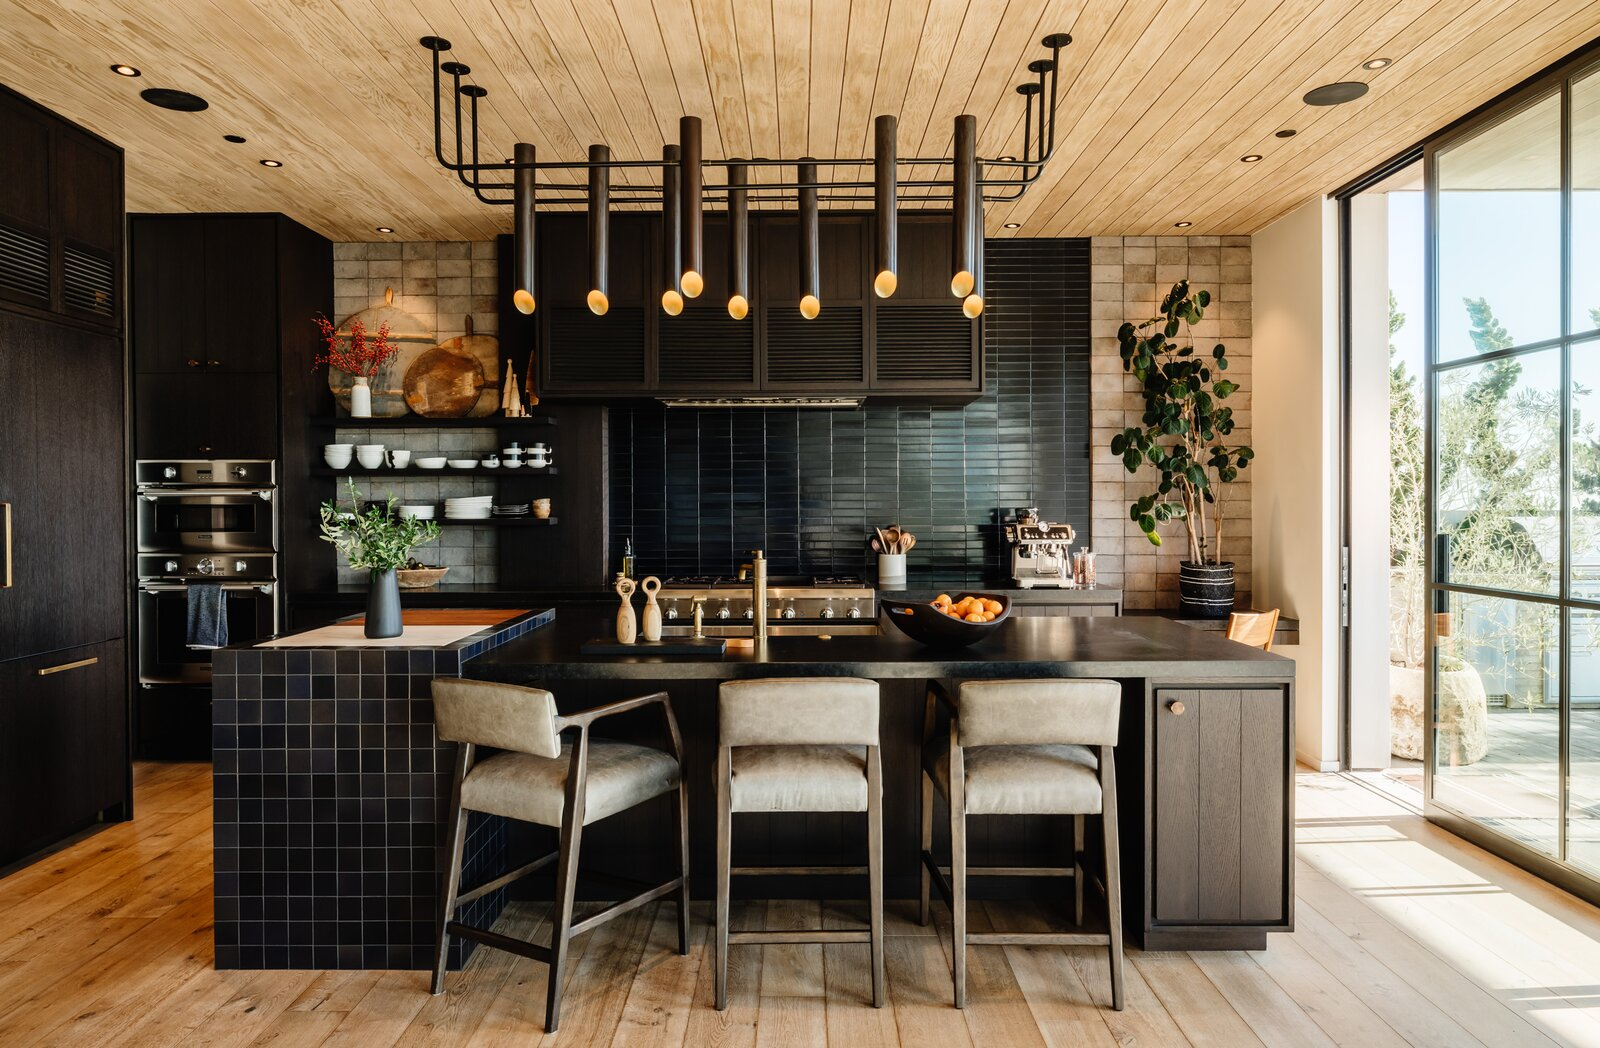 An Architect's Dream Kitchen Channels SoCal's Laid-Back Vibes With a Fusion of Homey Materials